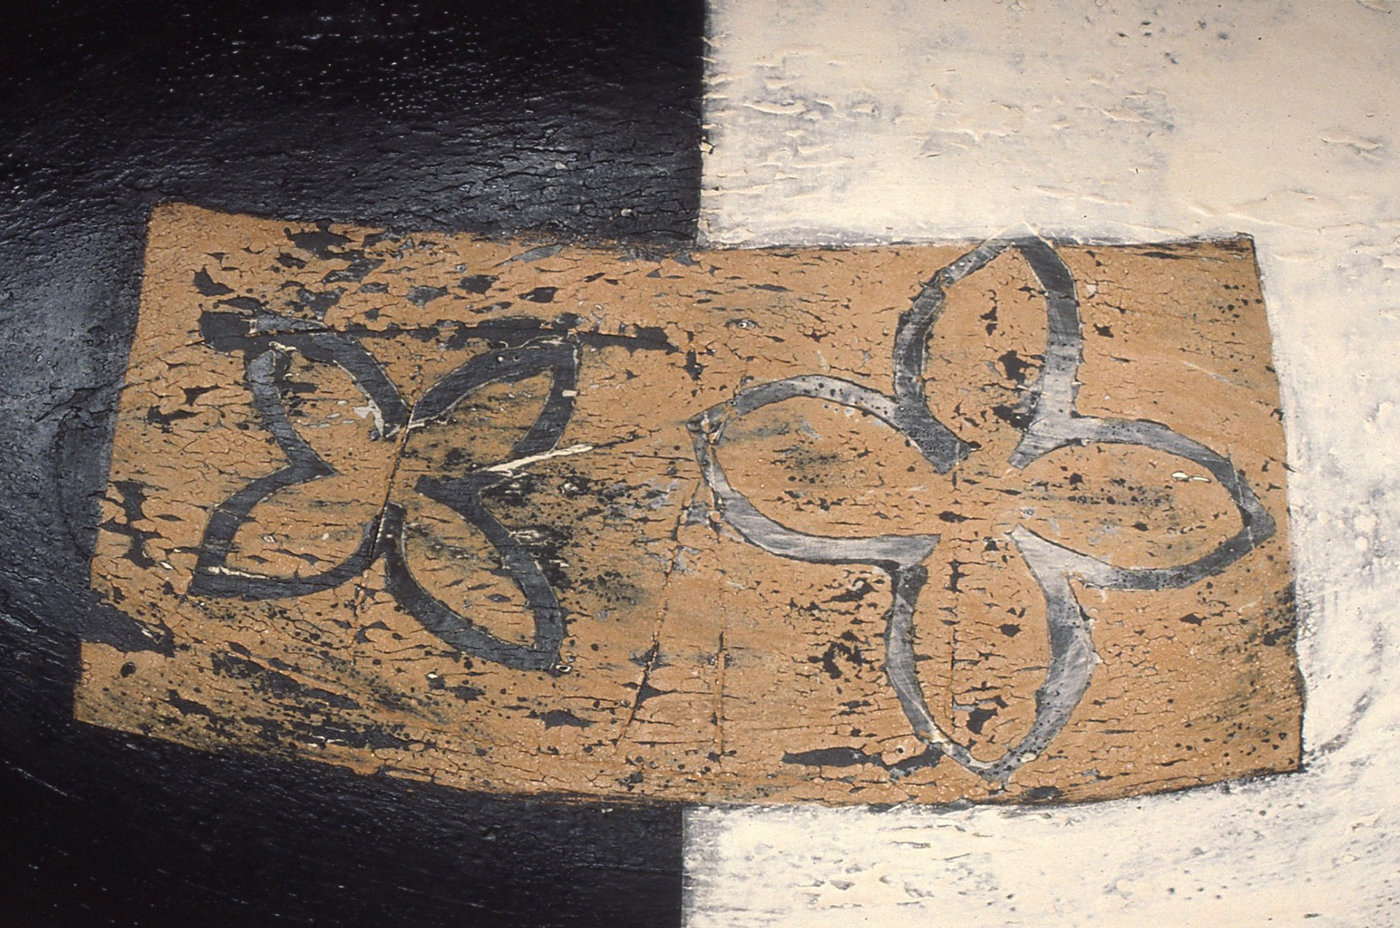 Untitled bowl, 1995 (detail)